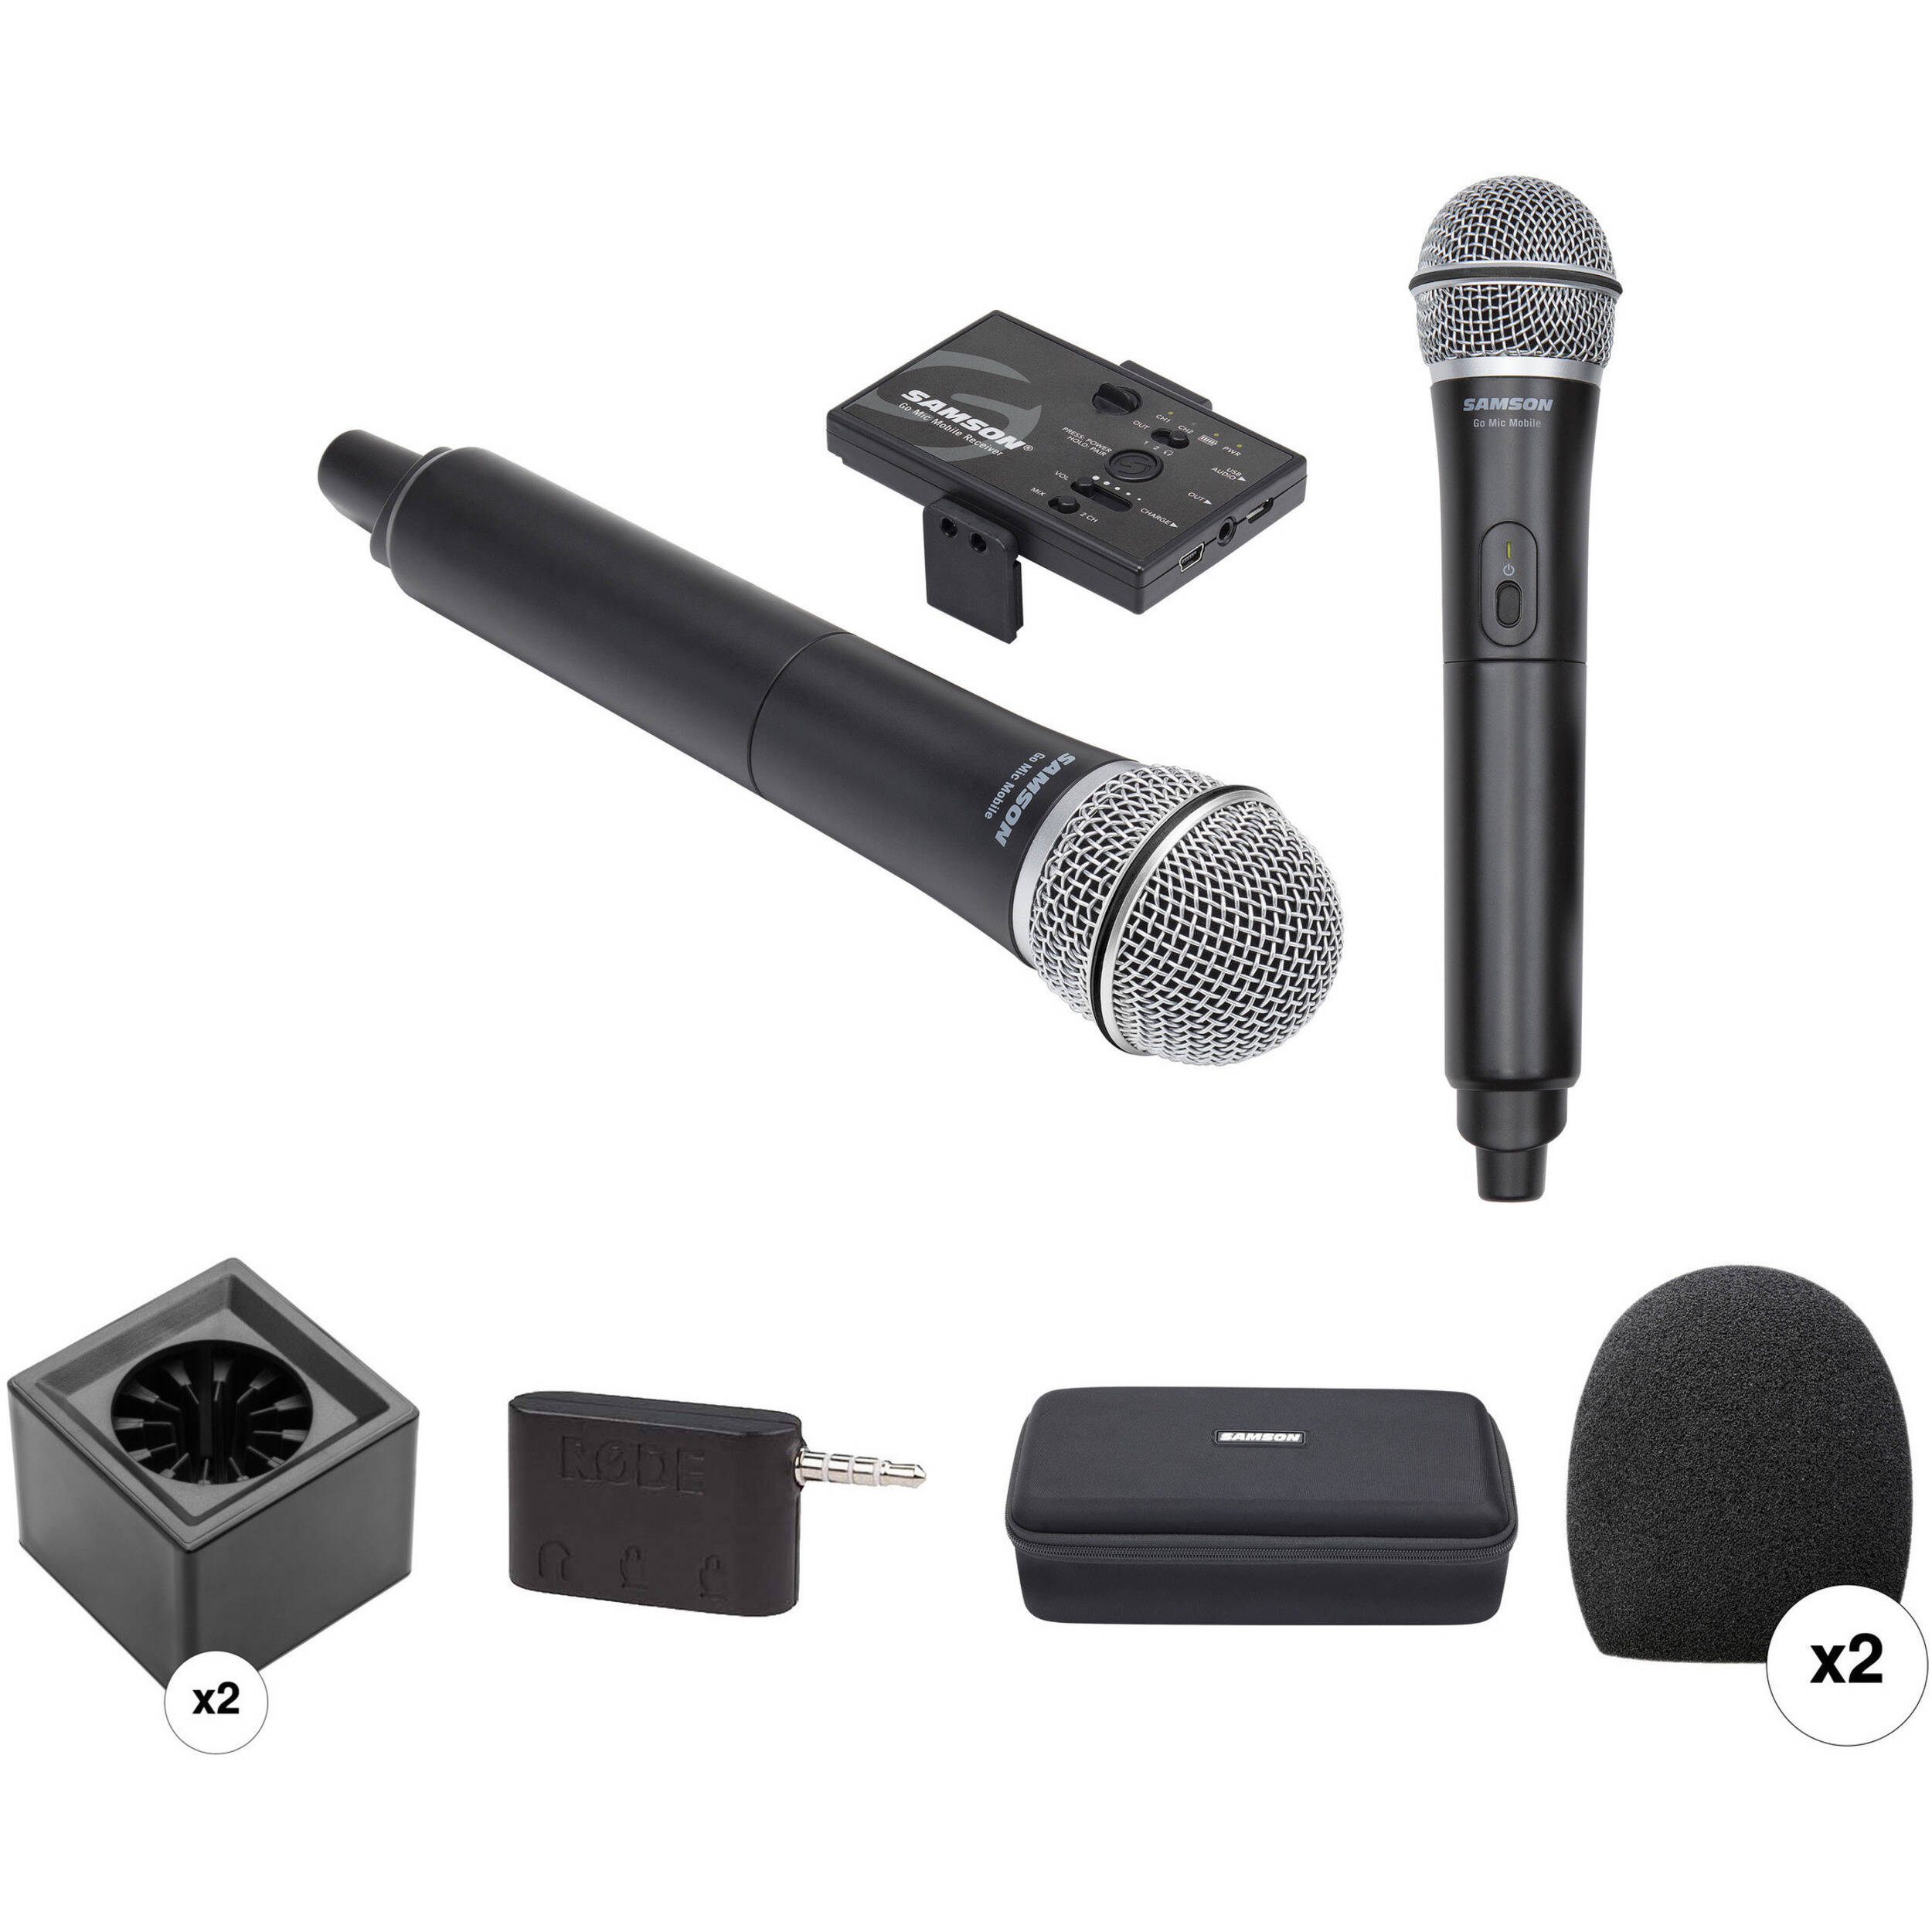 Samson Go Mic Mobile Dual Channel Handheld System Kit Bh Photo Mini 35mm Portable Microphone With Clip For Smartphone Laptop Tablet Pc